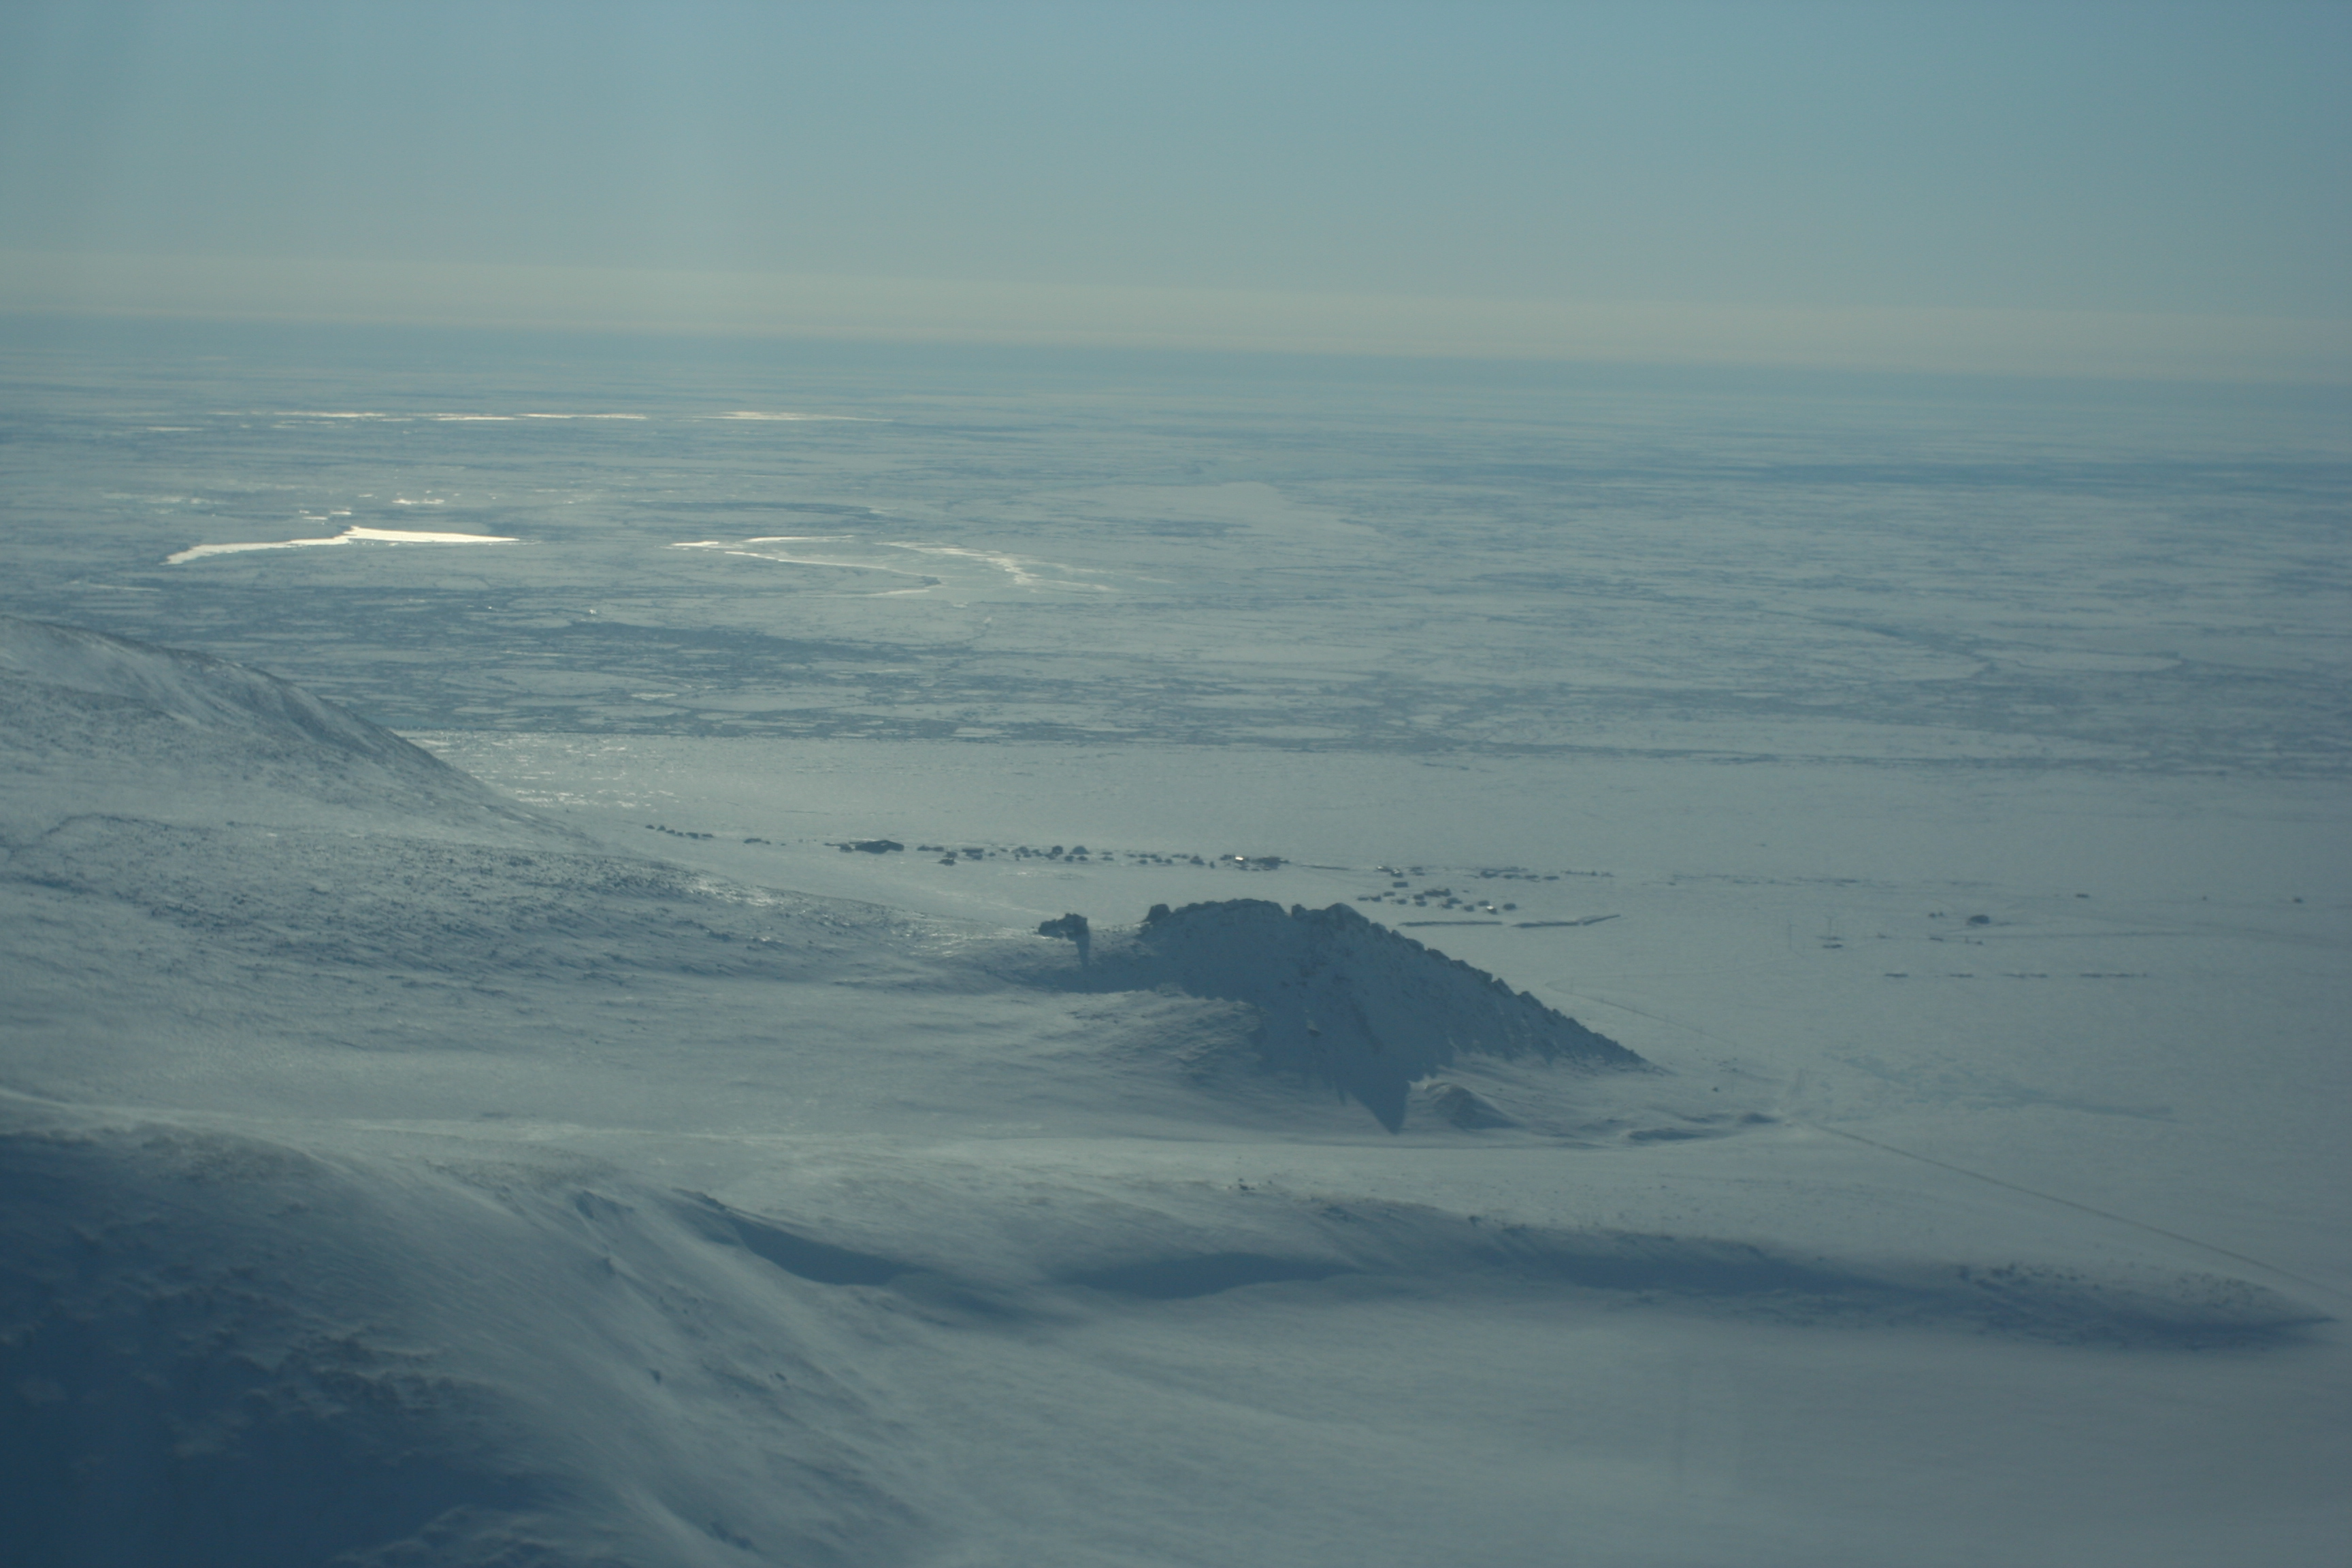 Wales and Bering Strait ice